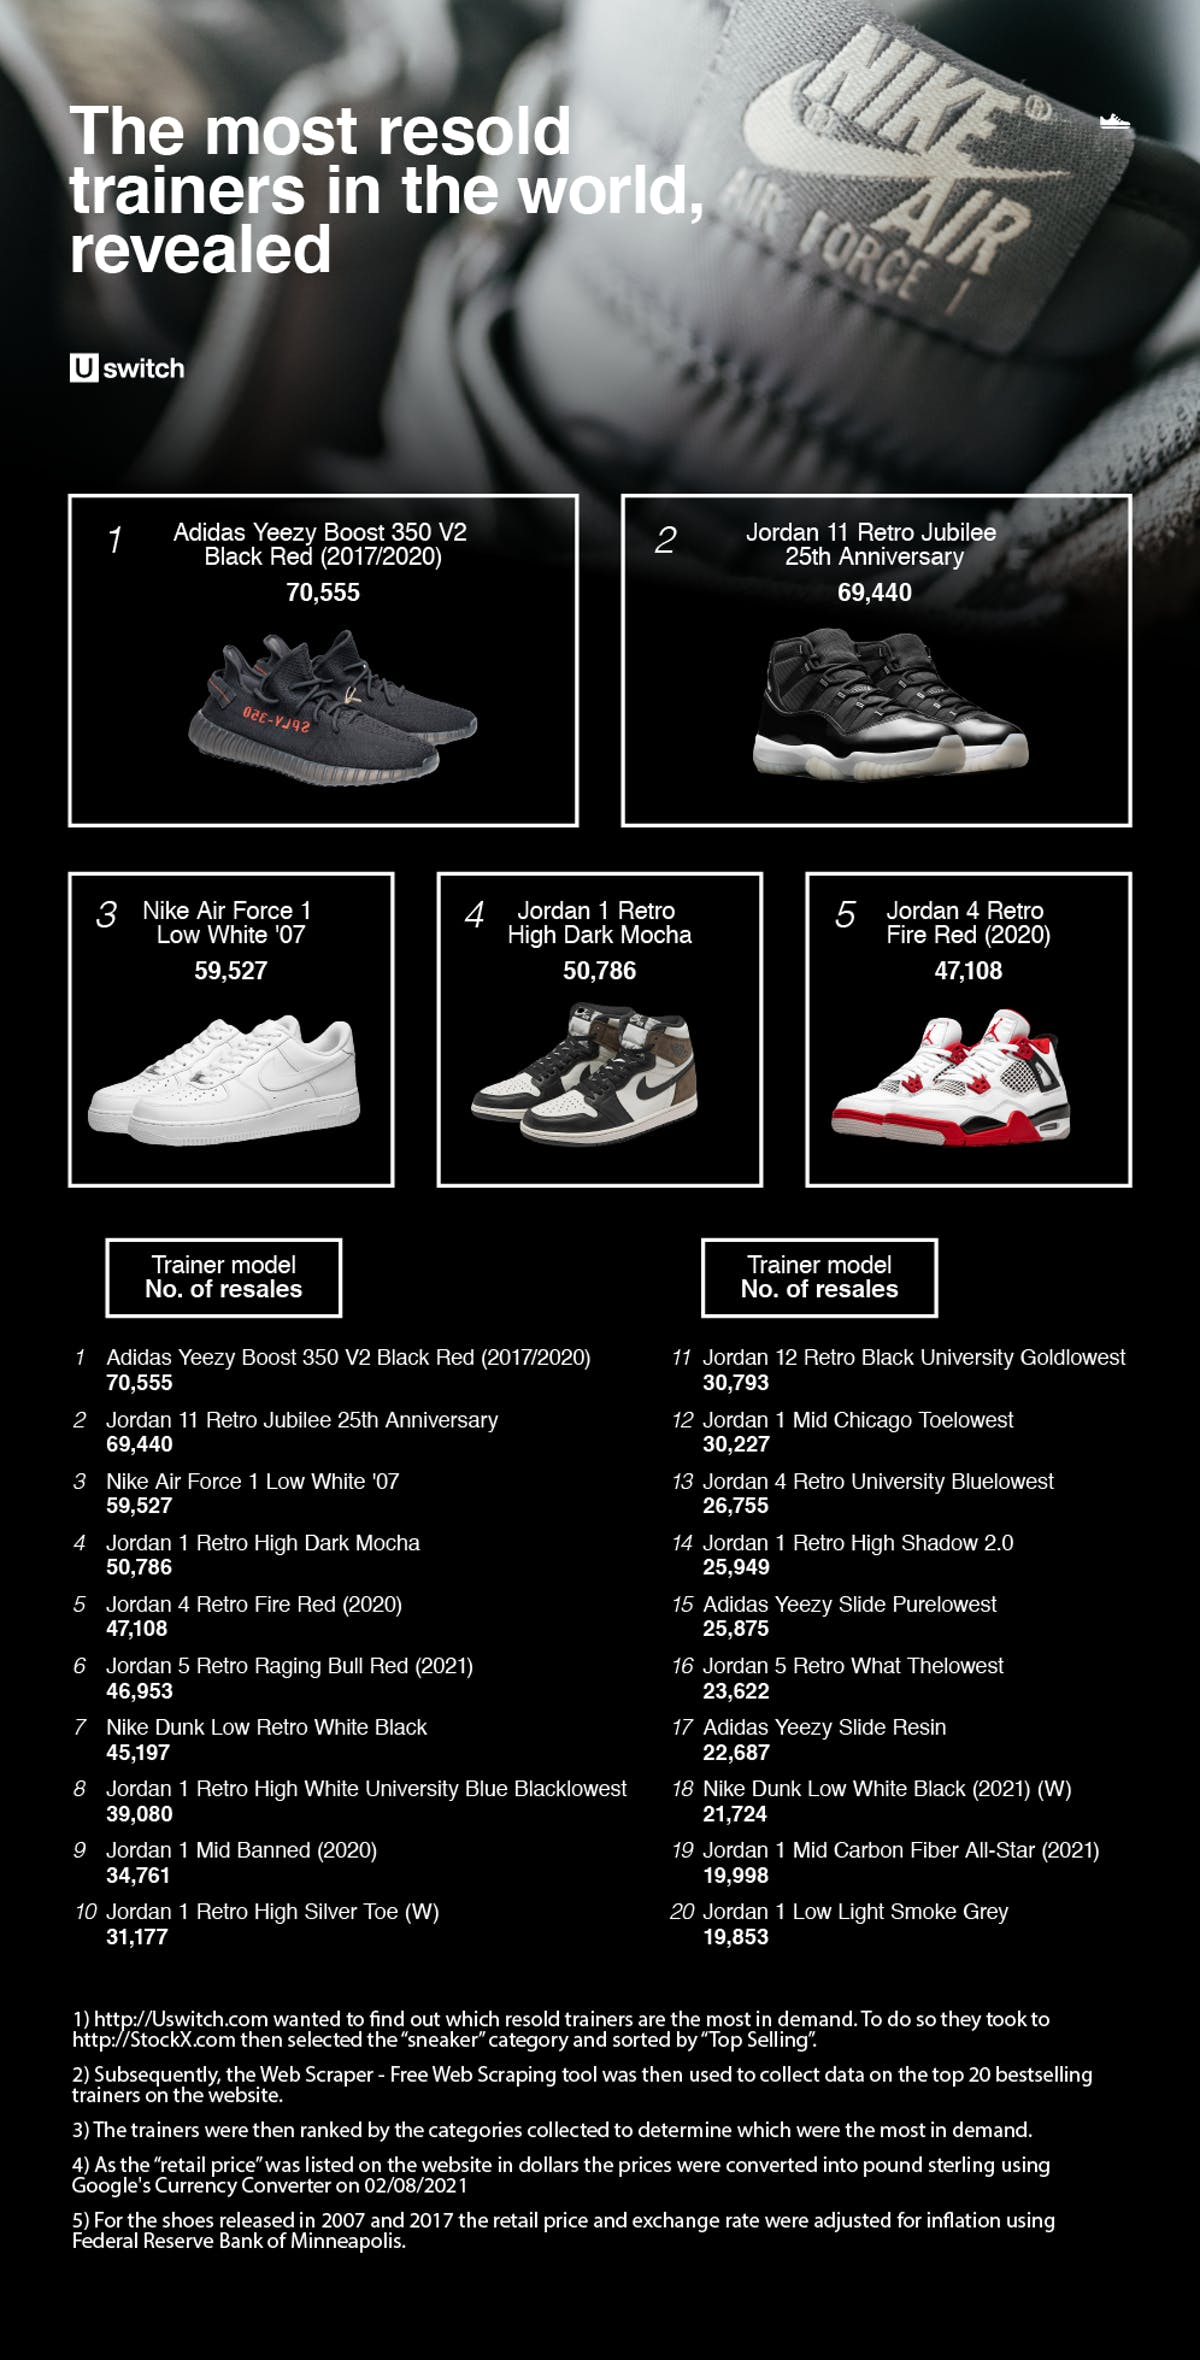 Table showing the most resold trainers online.